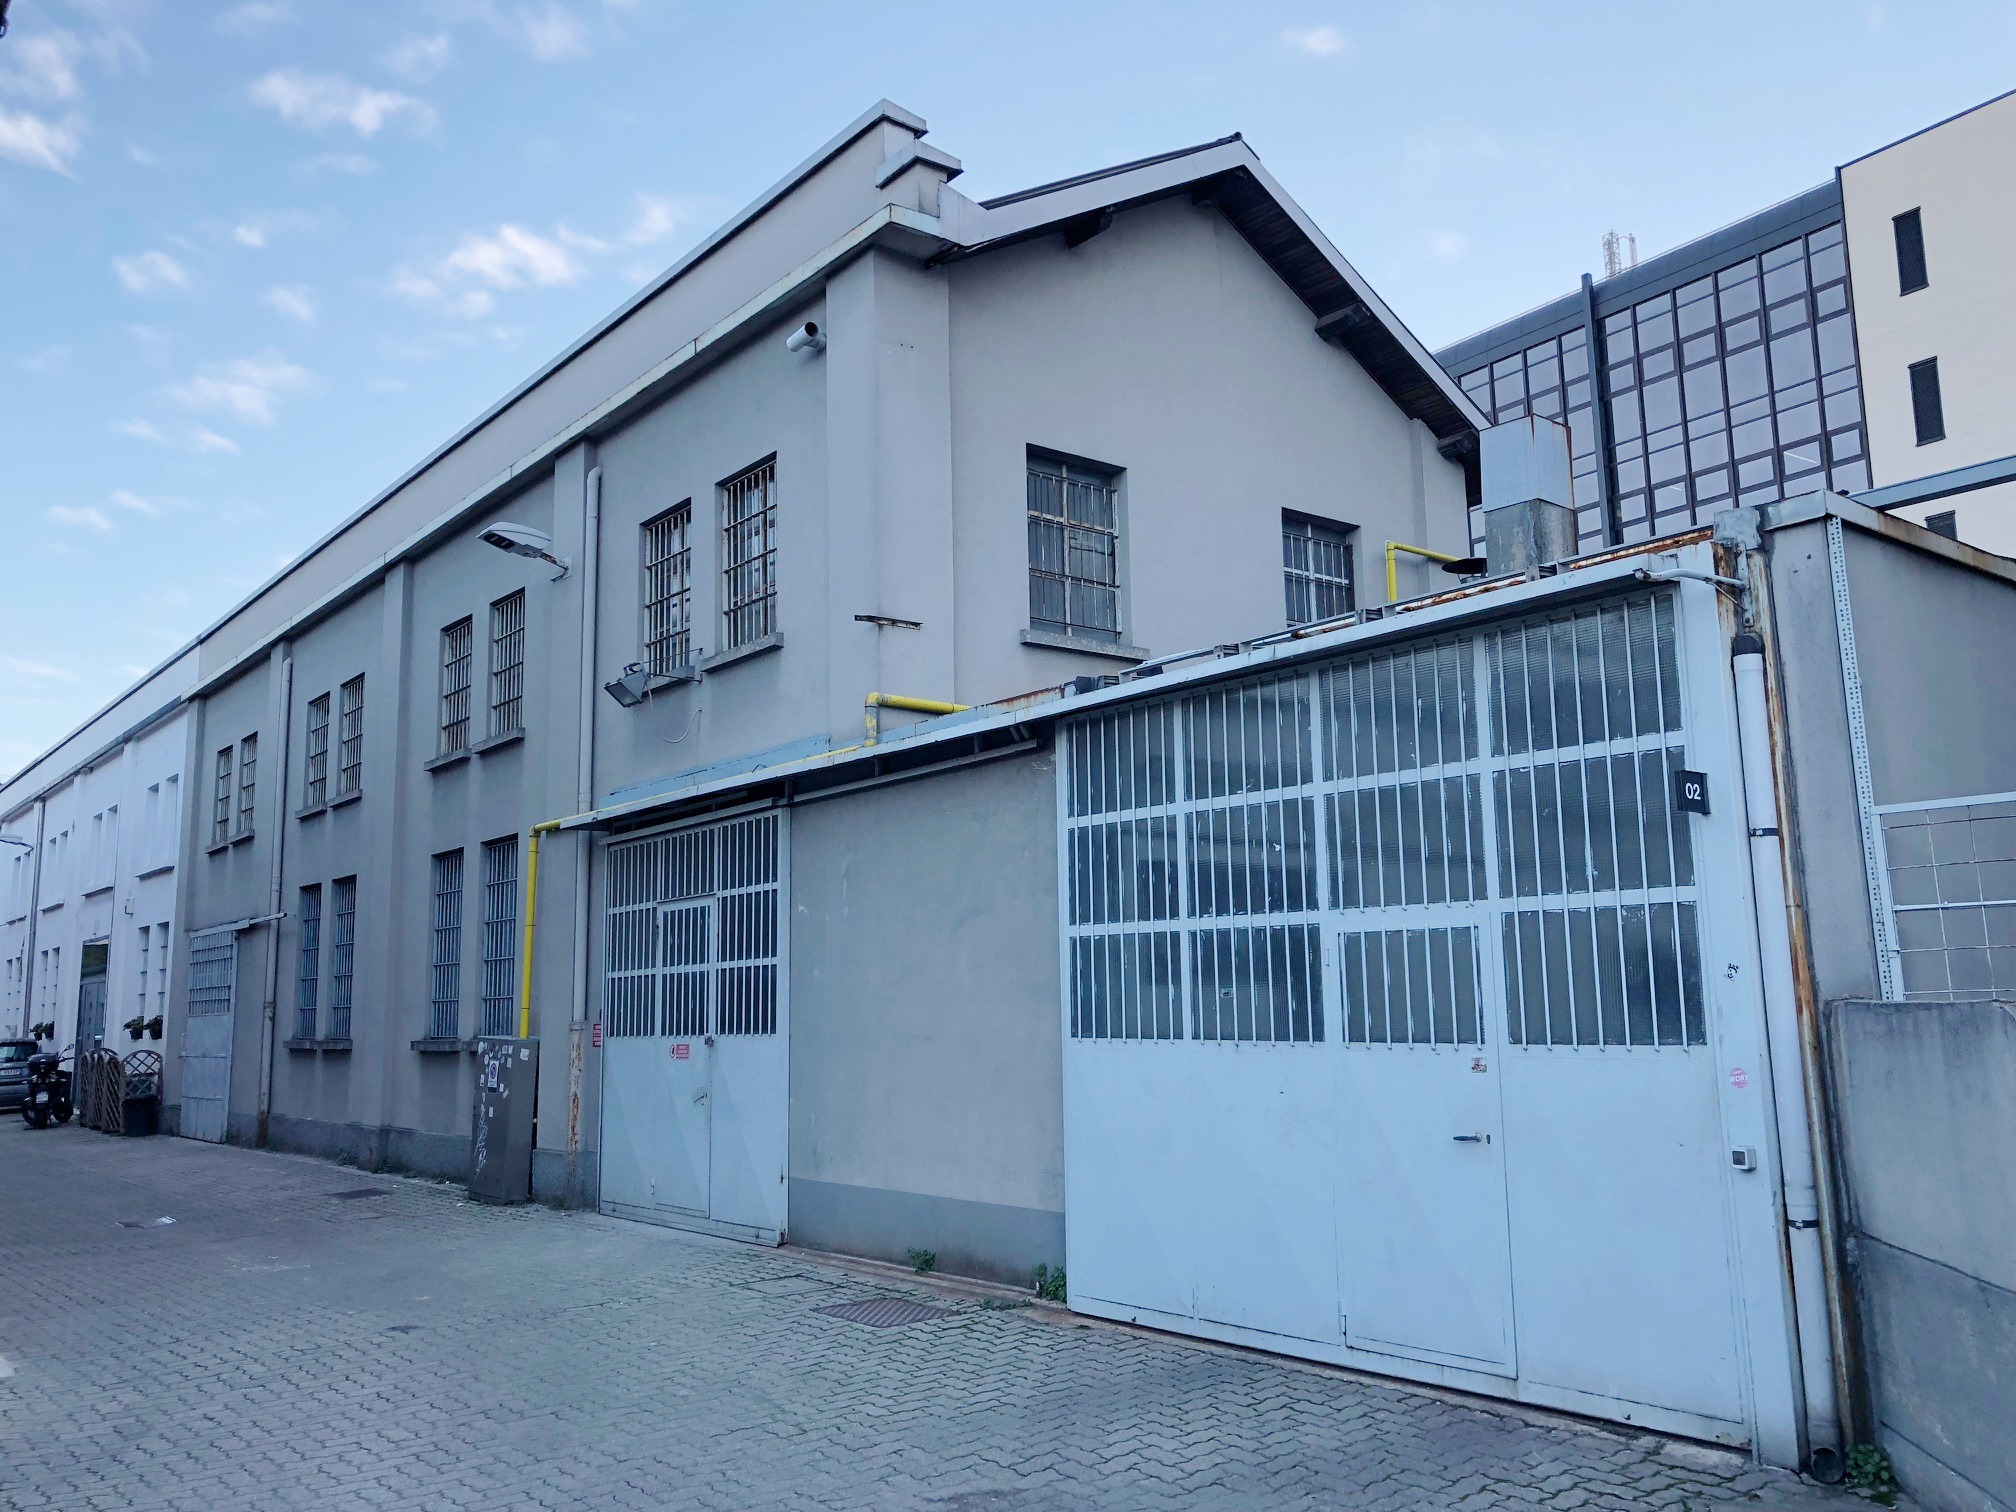 Opificio 31-Forni - Officina, Spazio industriale di 220mq in Via Tortona 31 | location disallestita 1